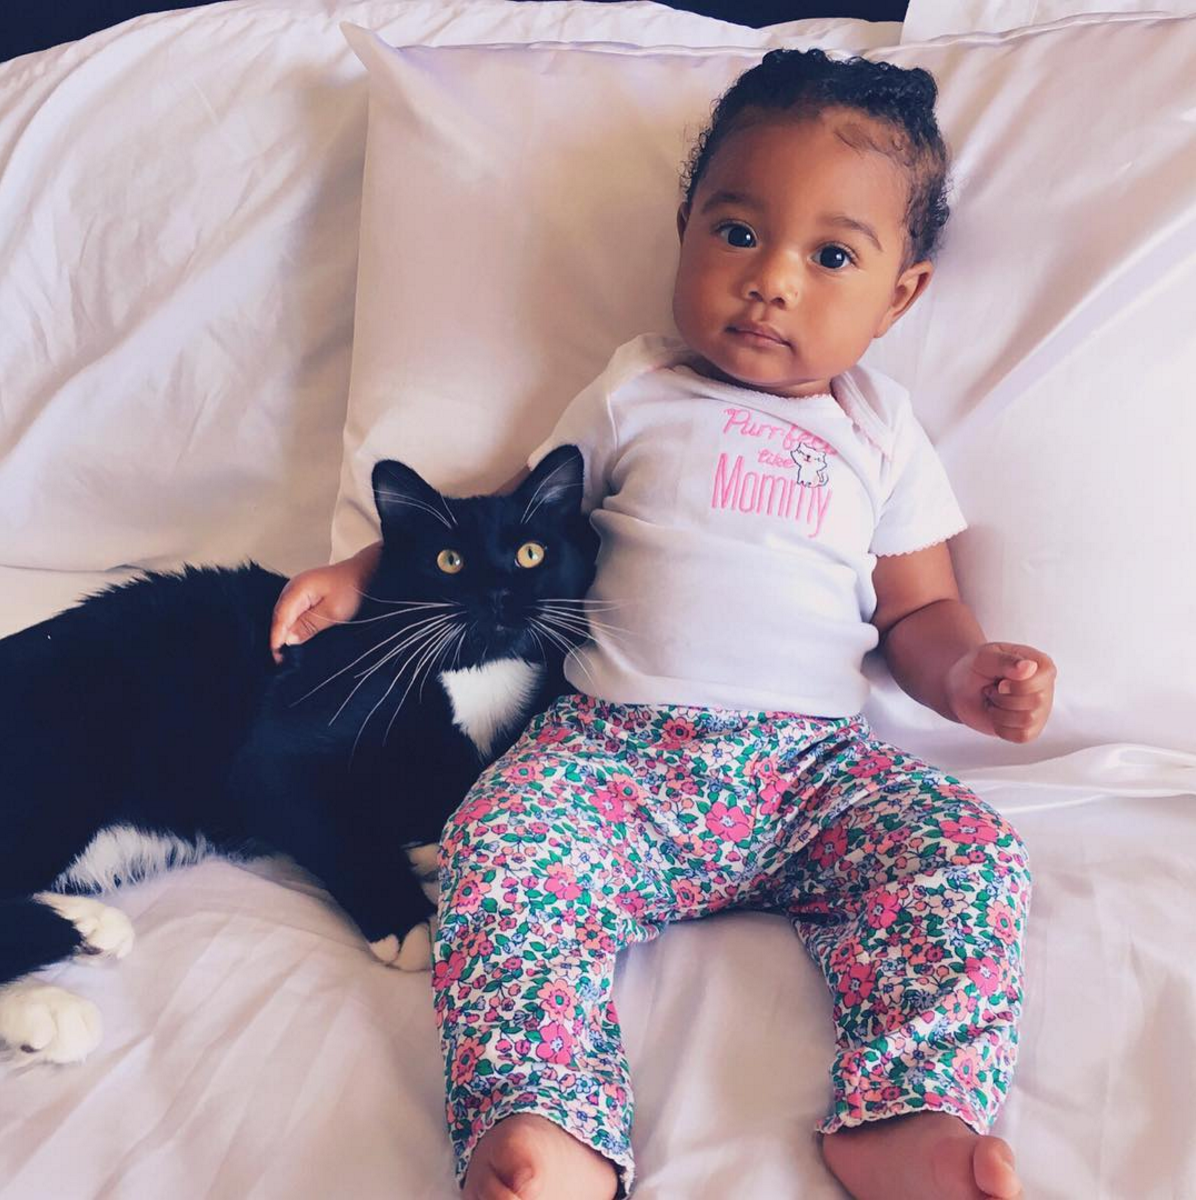 Purrfect Like Mommy.